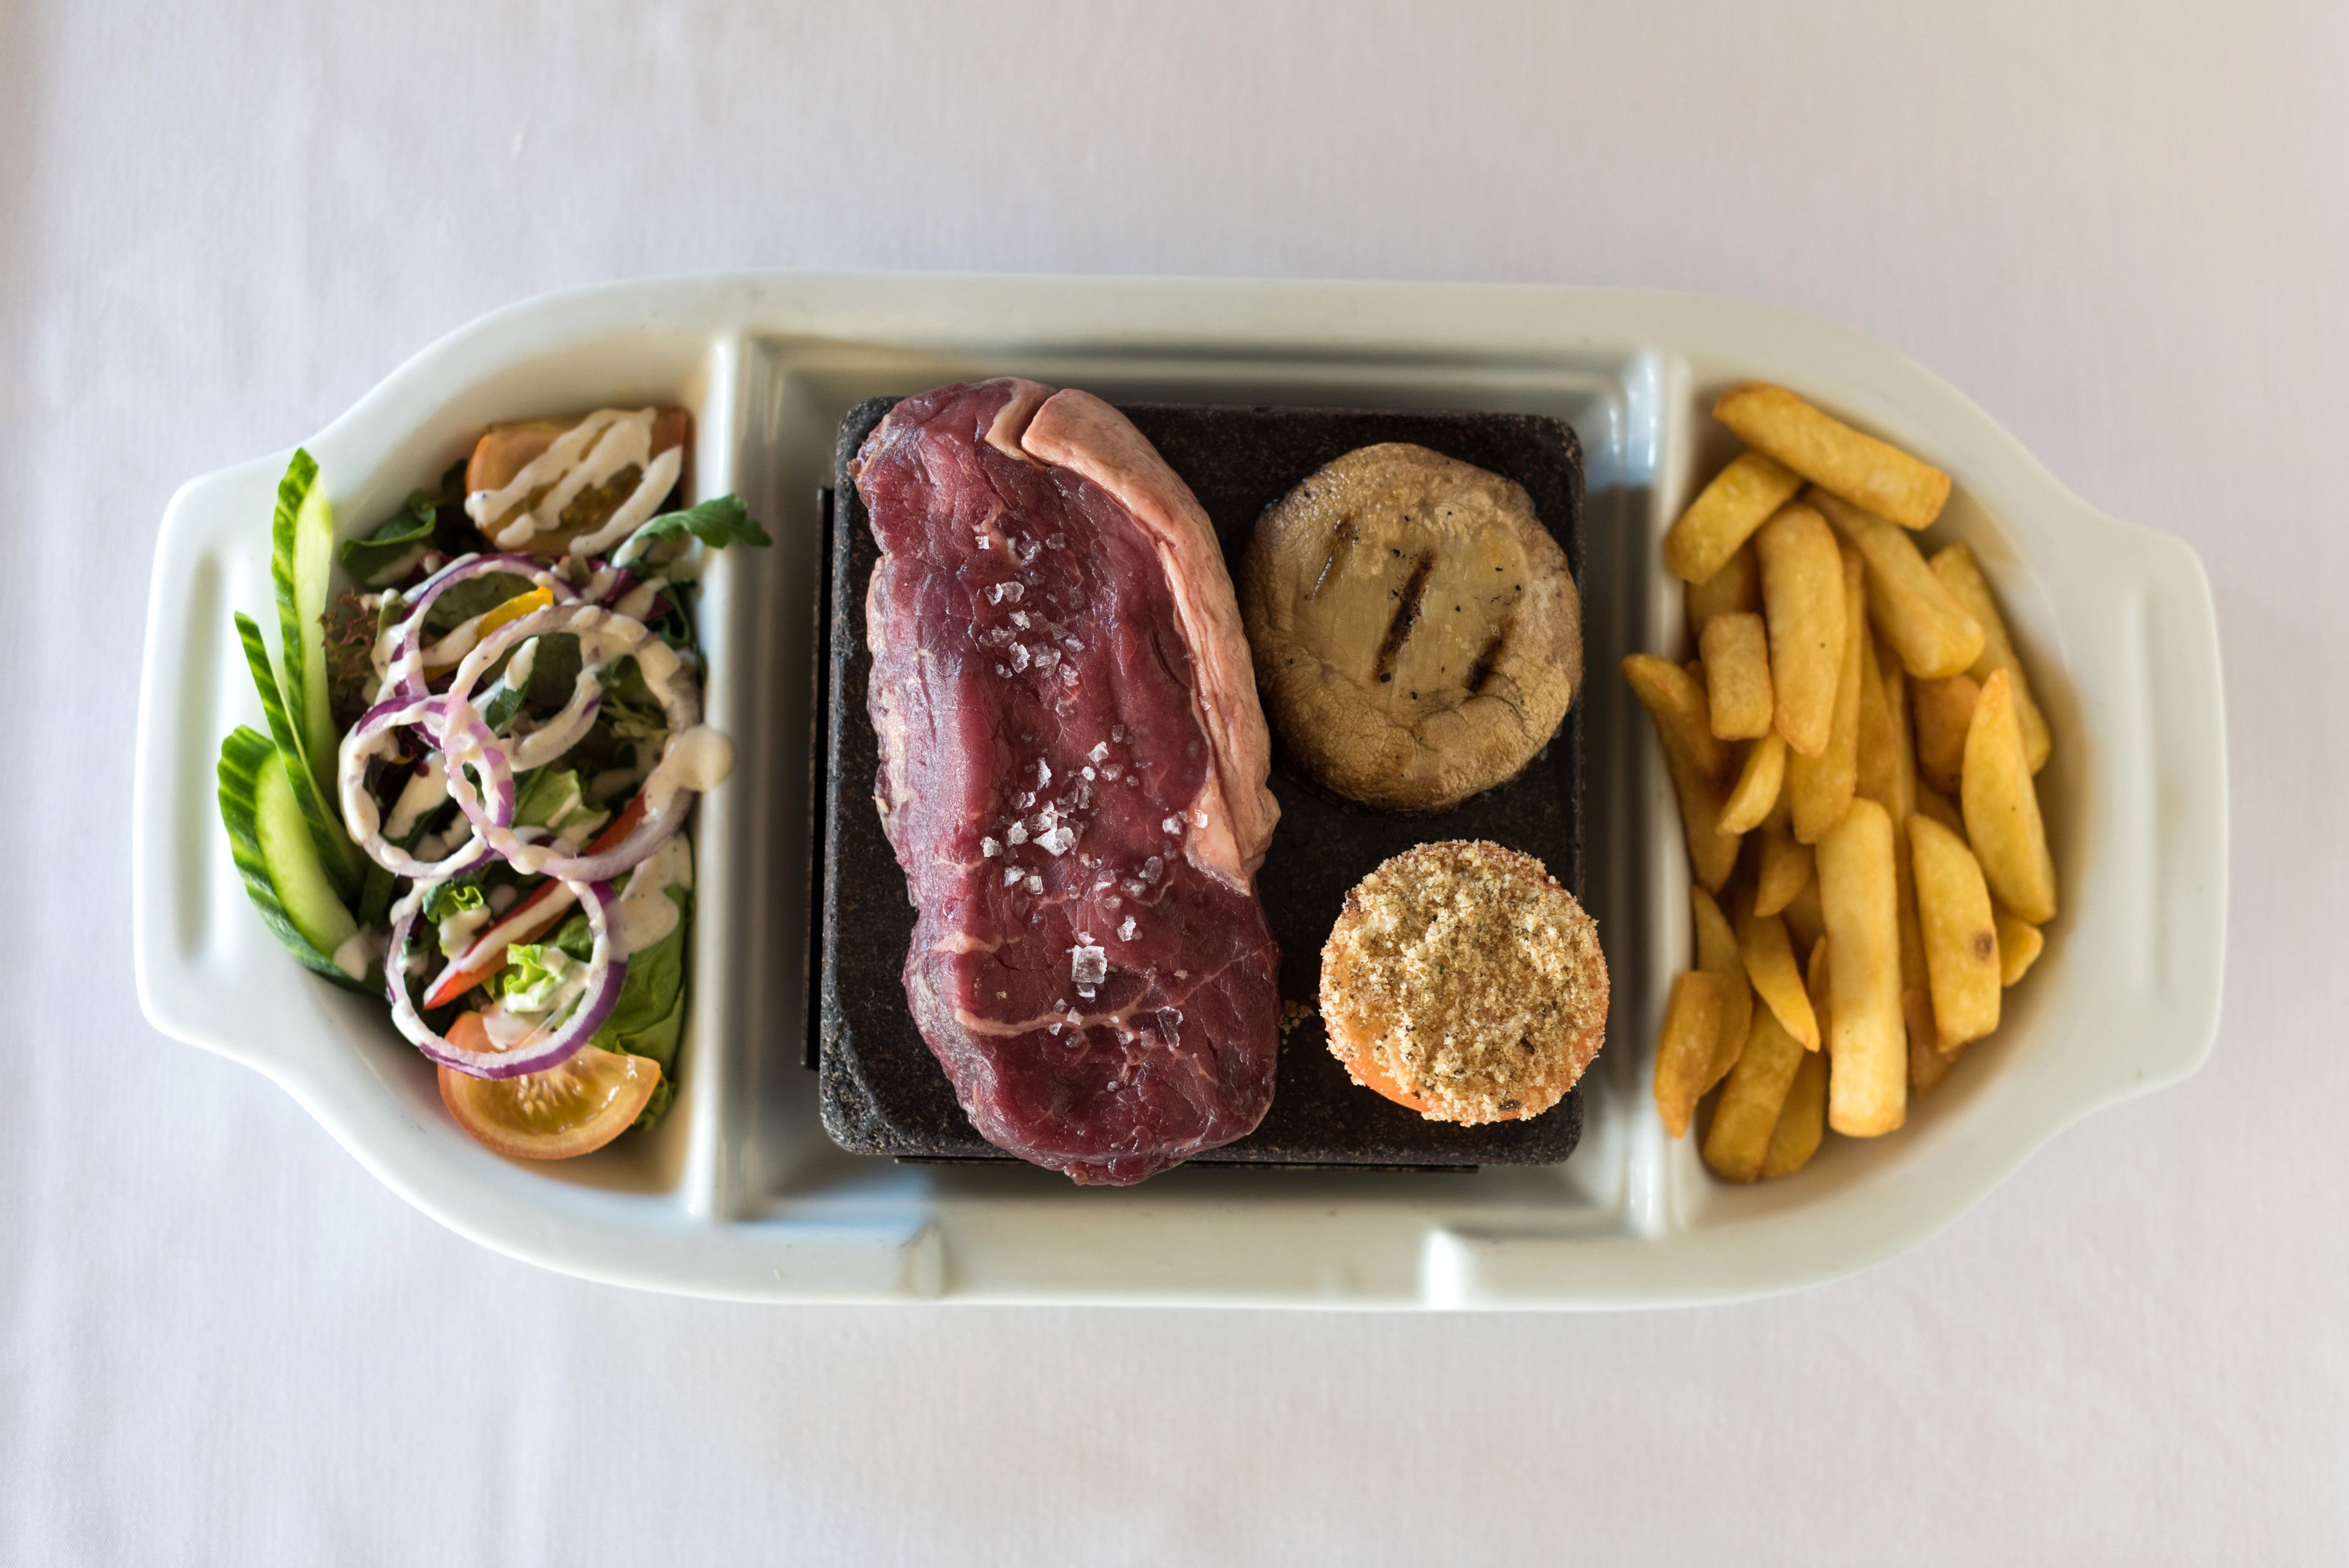 Our Delicious Black Rock Grill Theatre In The Dining Room Cook Your Own Steak